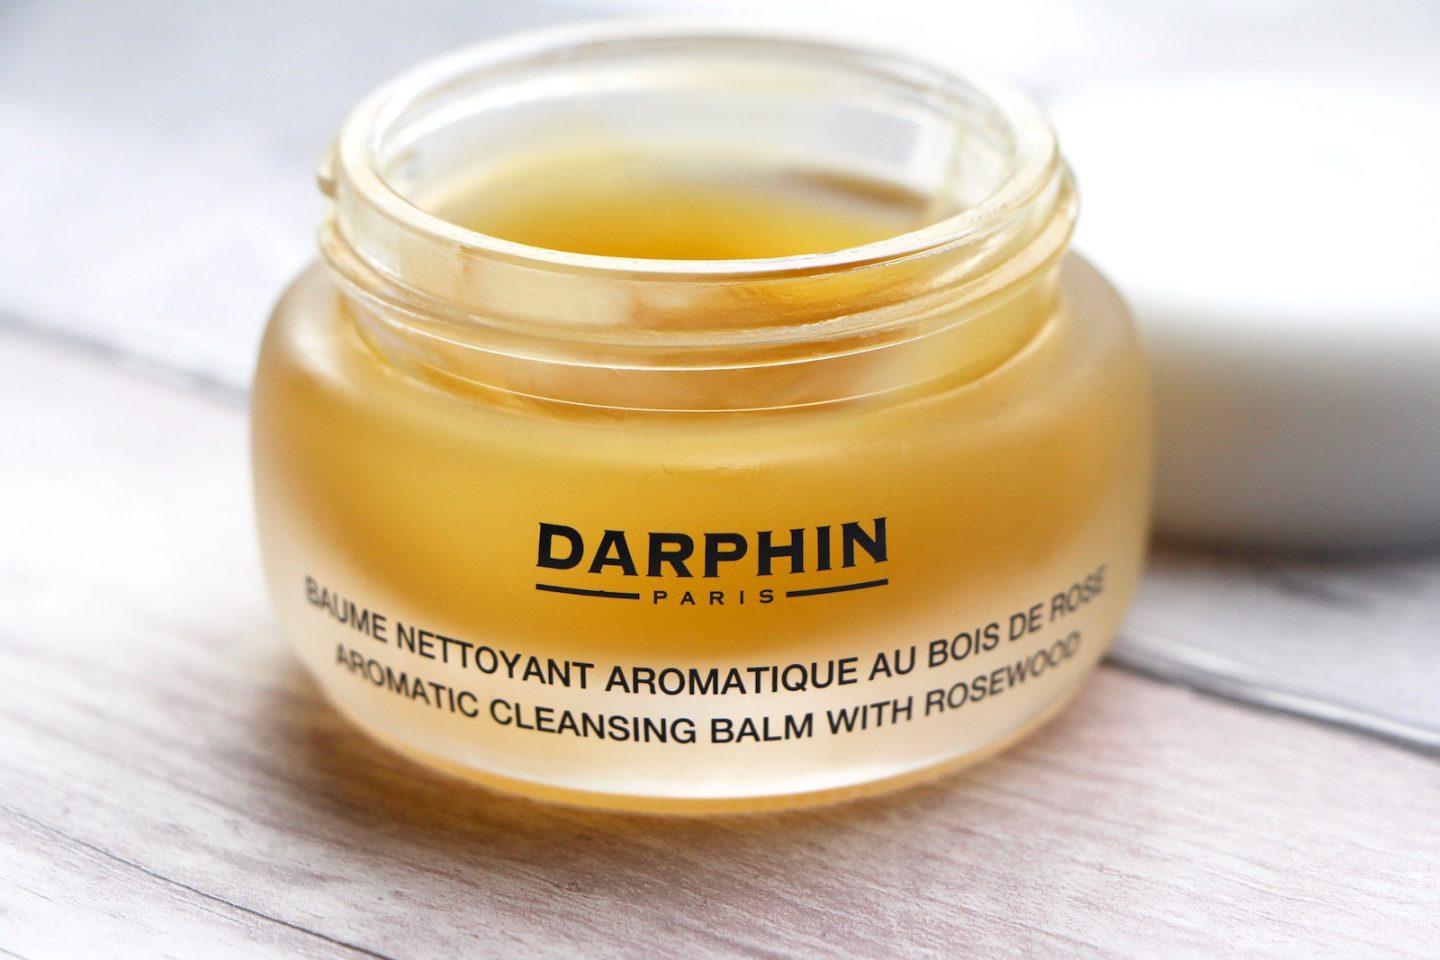 Darphin Aromatic Cleansing Balm Review